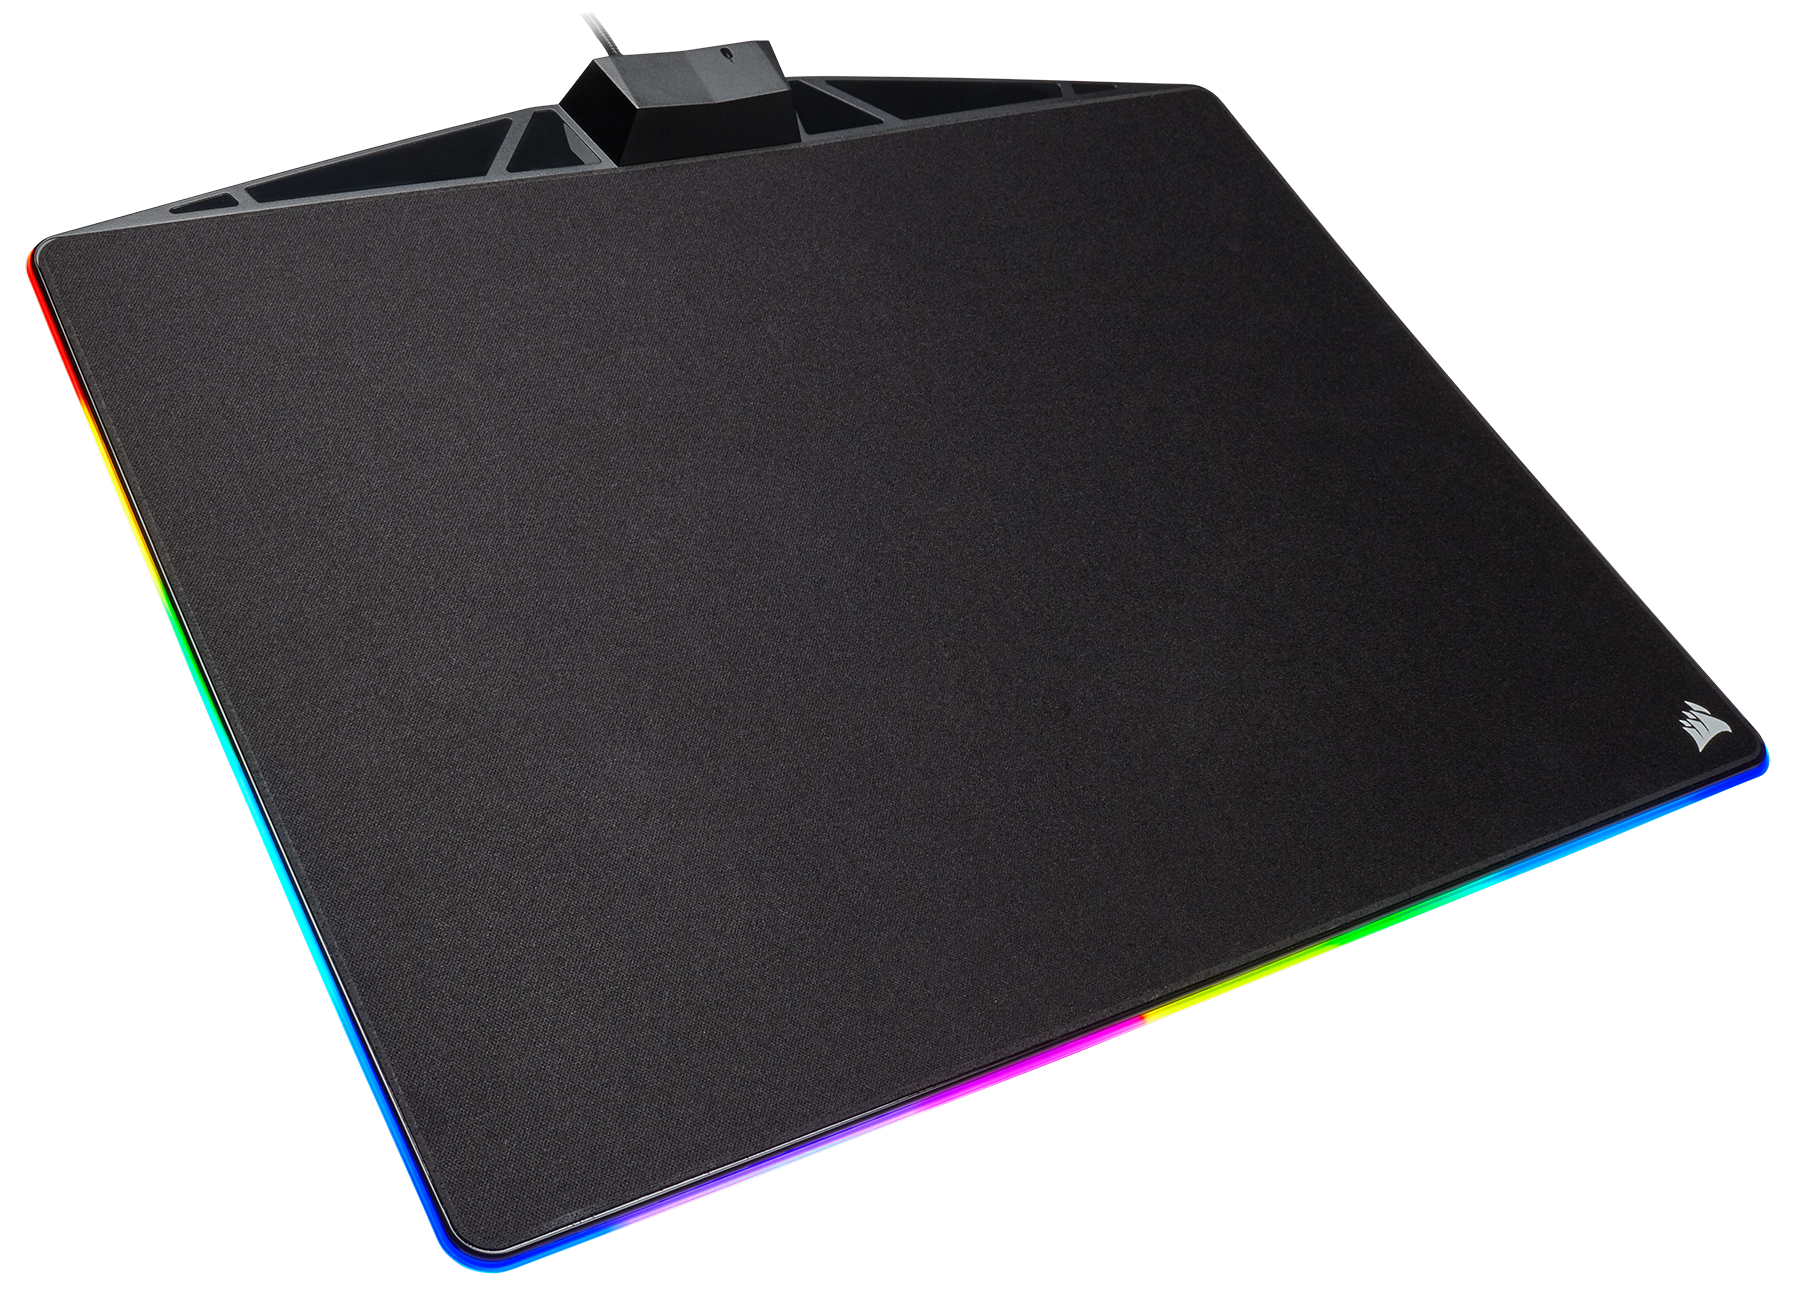 Mm800 Rgb Polaris Gaming Mouse Pad Cloth Edition Create Secondary Colors From Multicolored Leds Edn The Builds On Foundation Of Corsair Pads Excellence In Durability Tracking And Precision With A Whole New Level